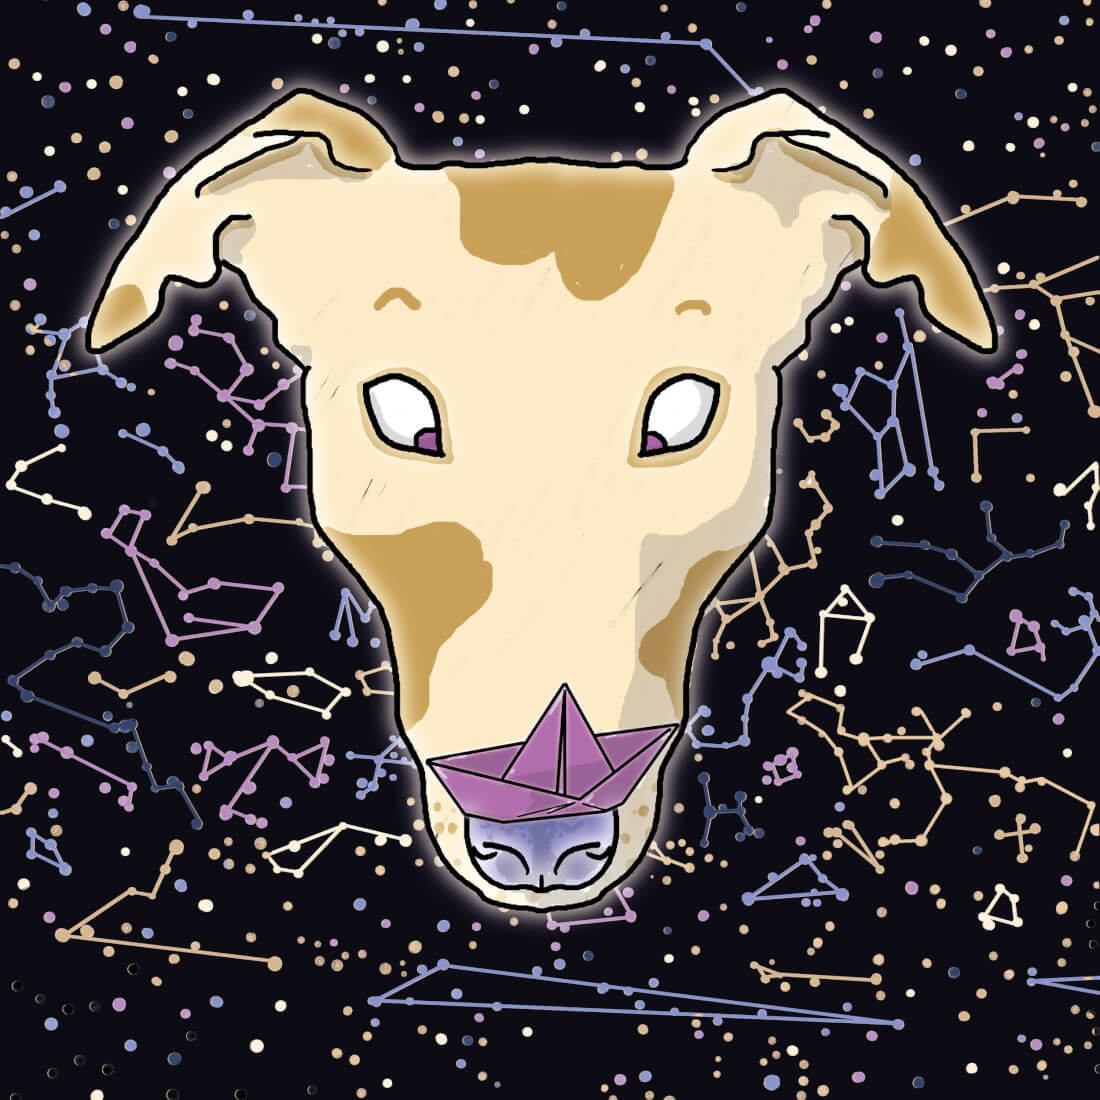 space-greyhound-illustration-tostoini